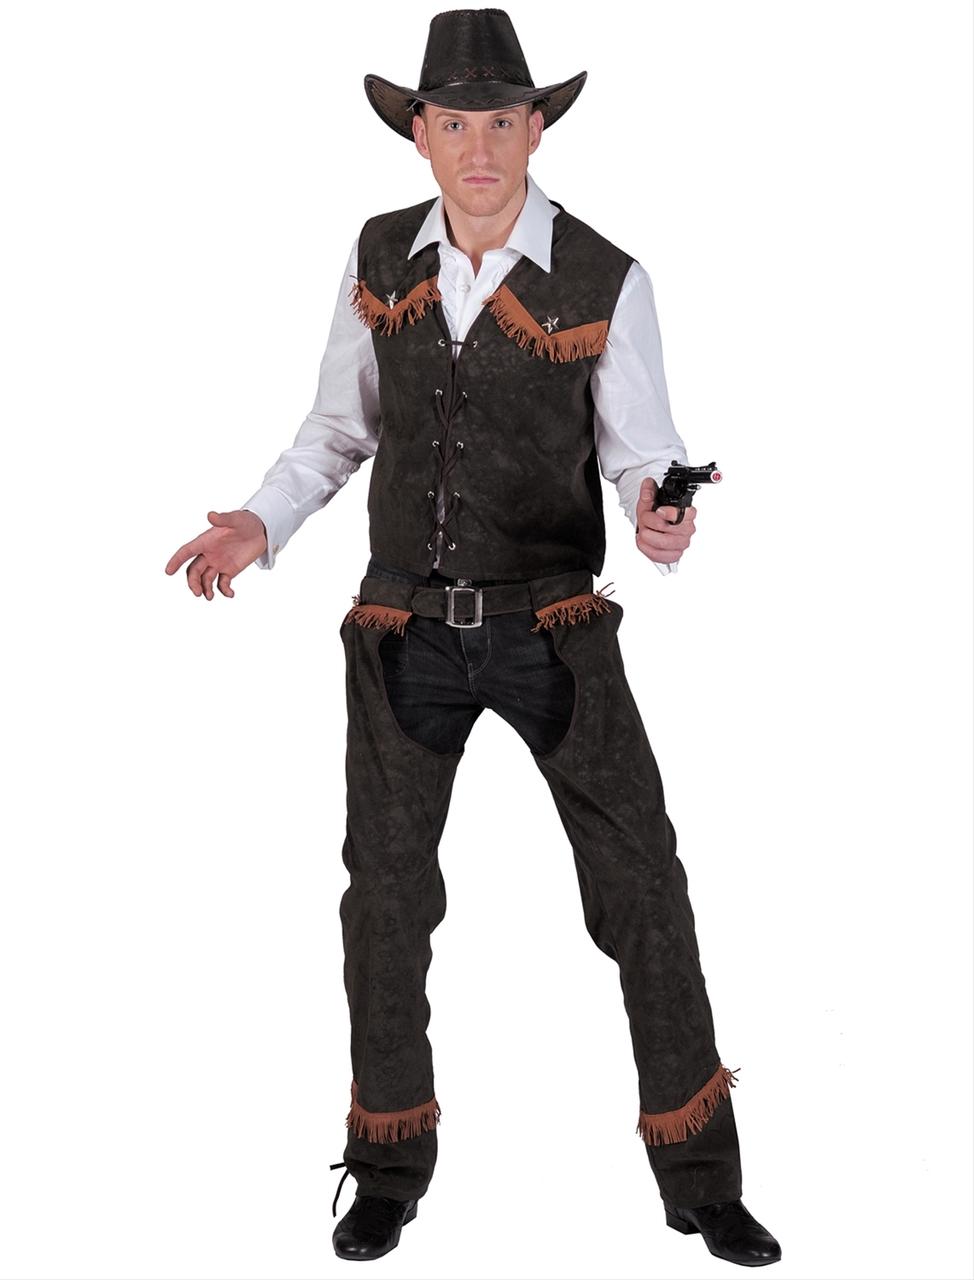 Best of the West Cowboy Men s Costume - The Costume Shoppe 4432e9350f7